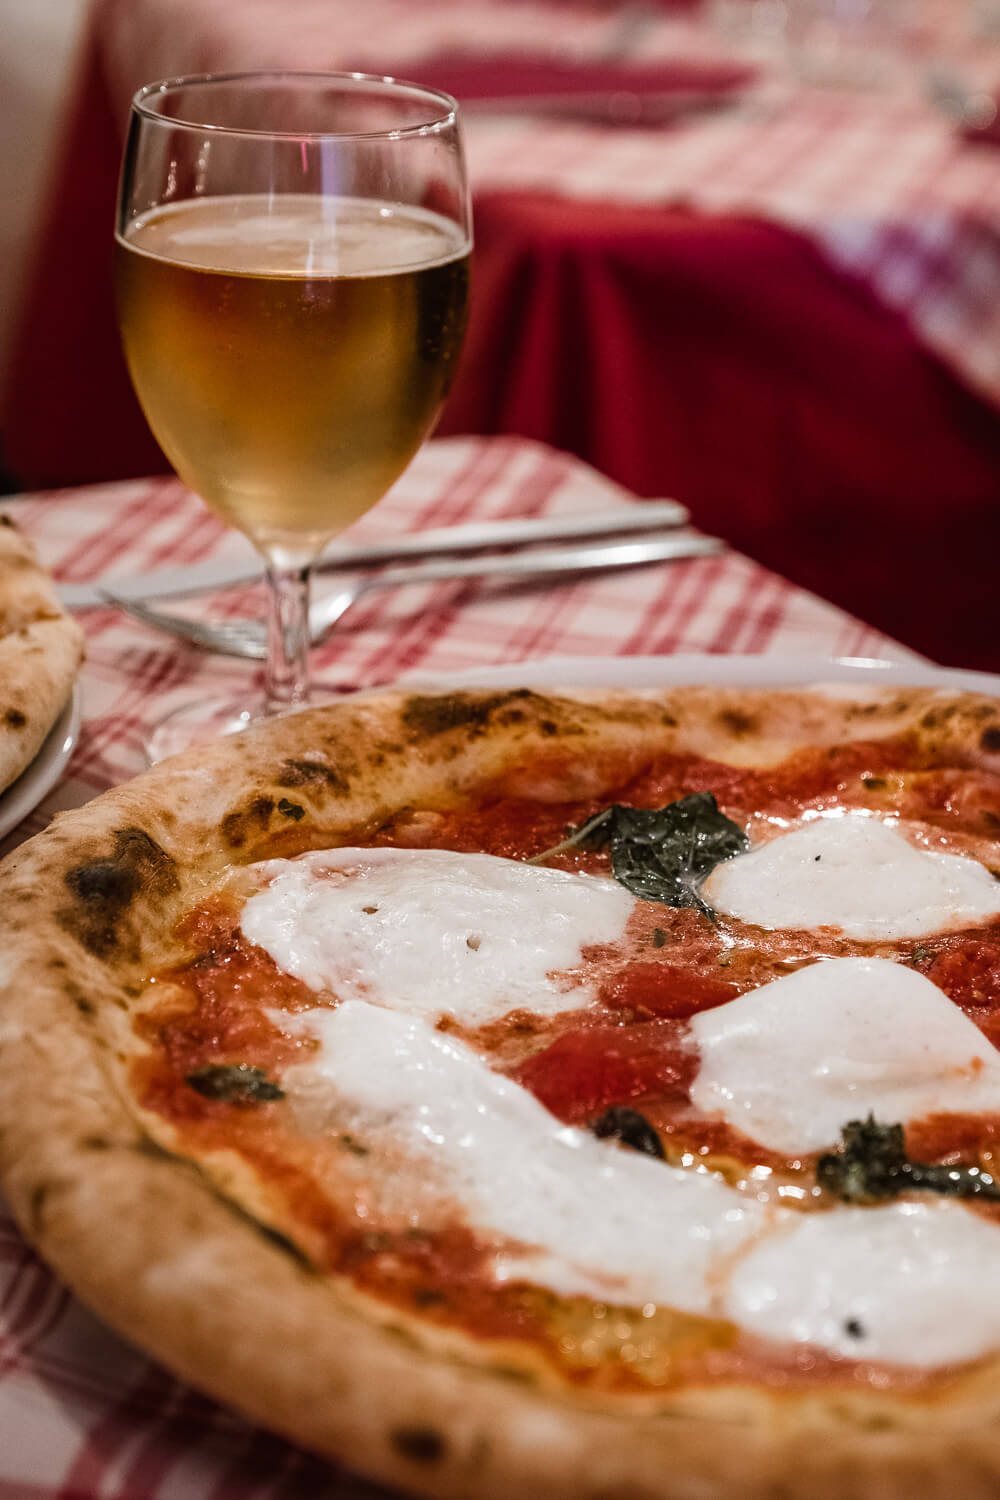 """Pizza margarita in Naples. Travel photography and guide by © Natasha Lequepeys for """"And Then I Met Yoko"""". #pompeii #italy #fujifilm #travelphotography"""